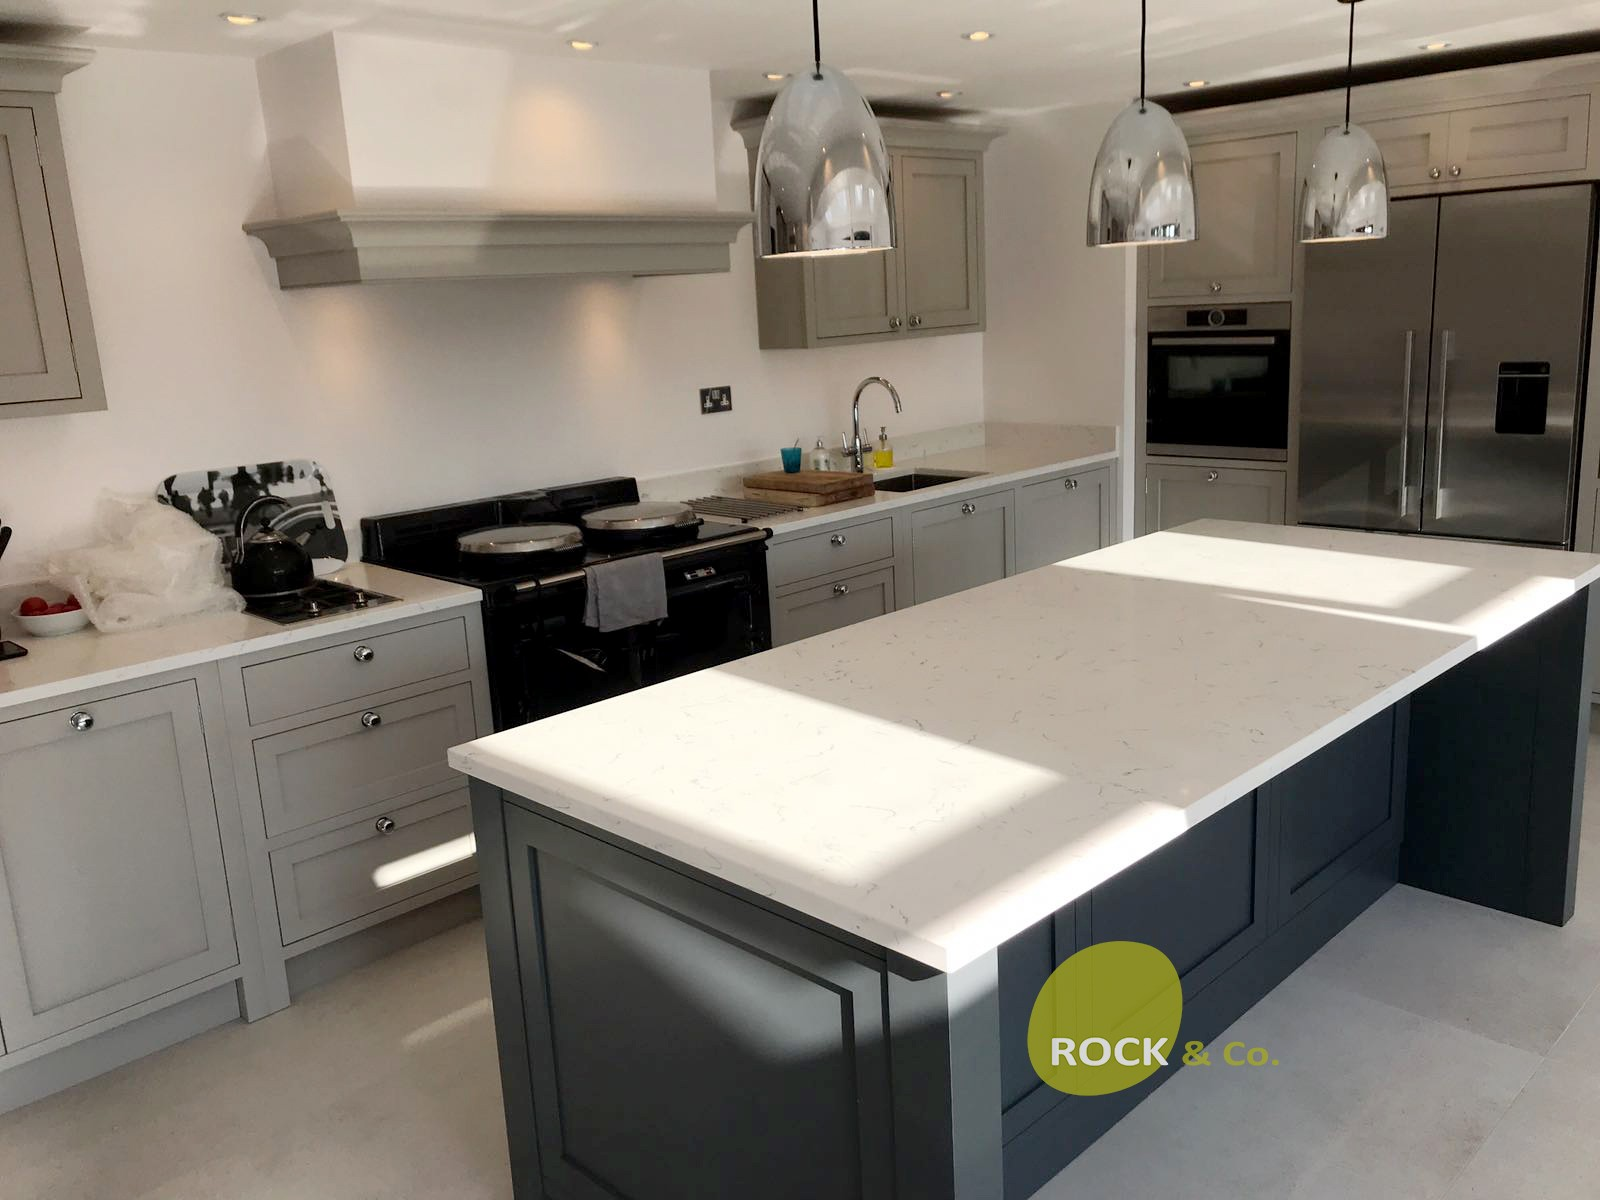 Kitchen of the week… Located in Oxfordshire, showcasing the Carrera and Attica White Carrera